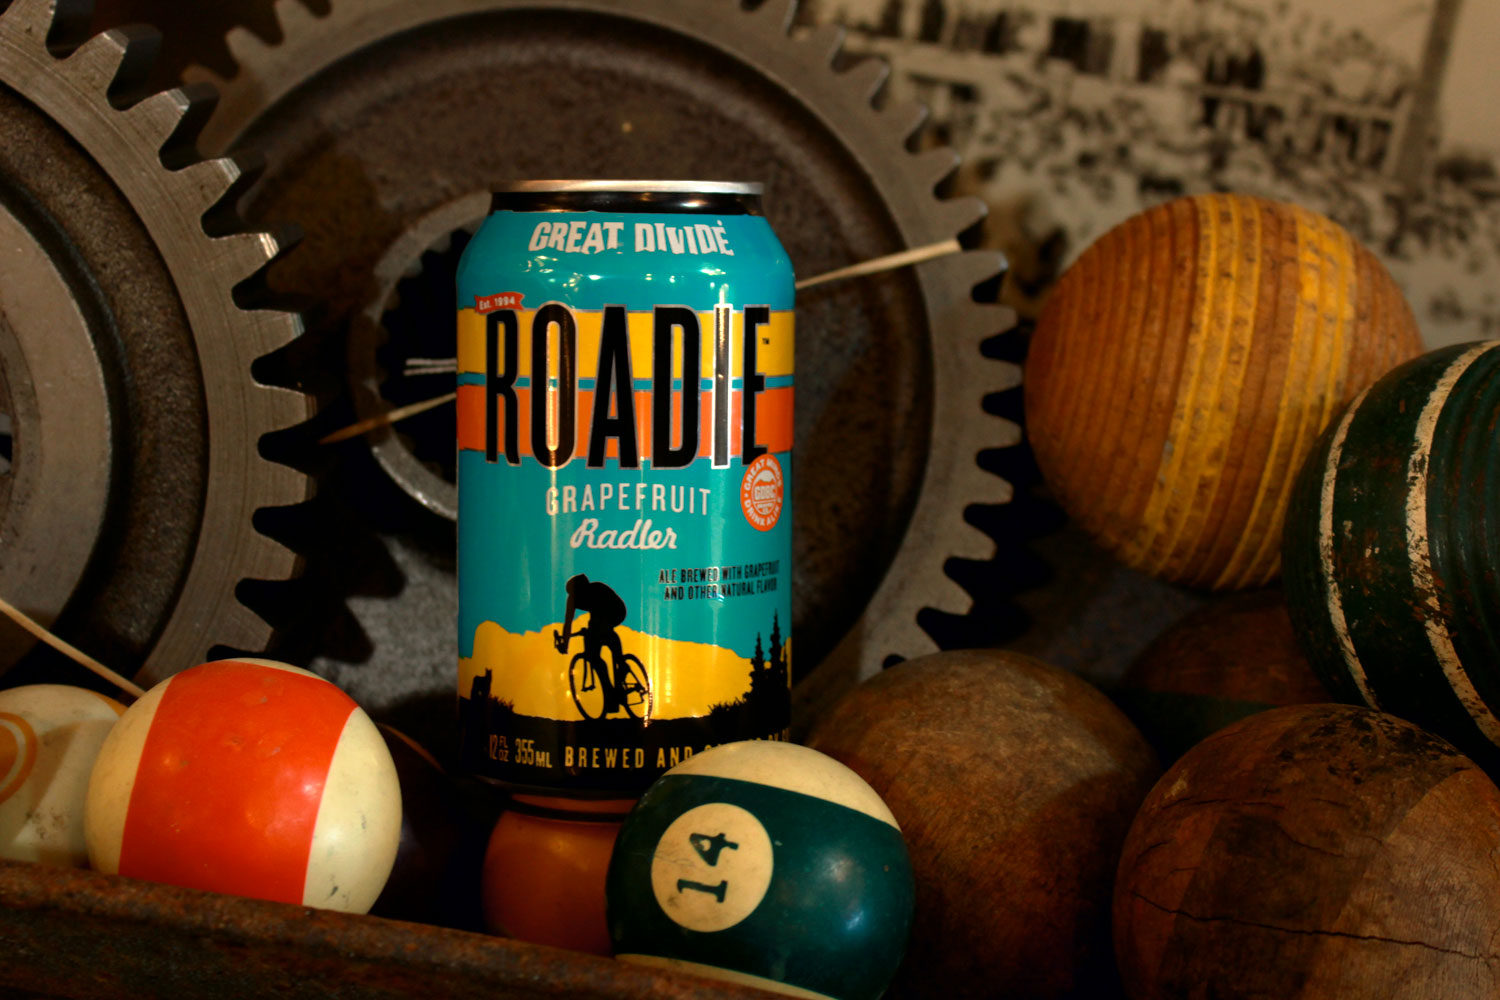 Roadie summer fruit radler from Great Divide.